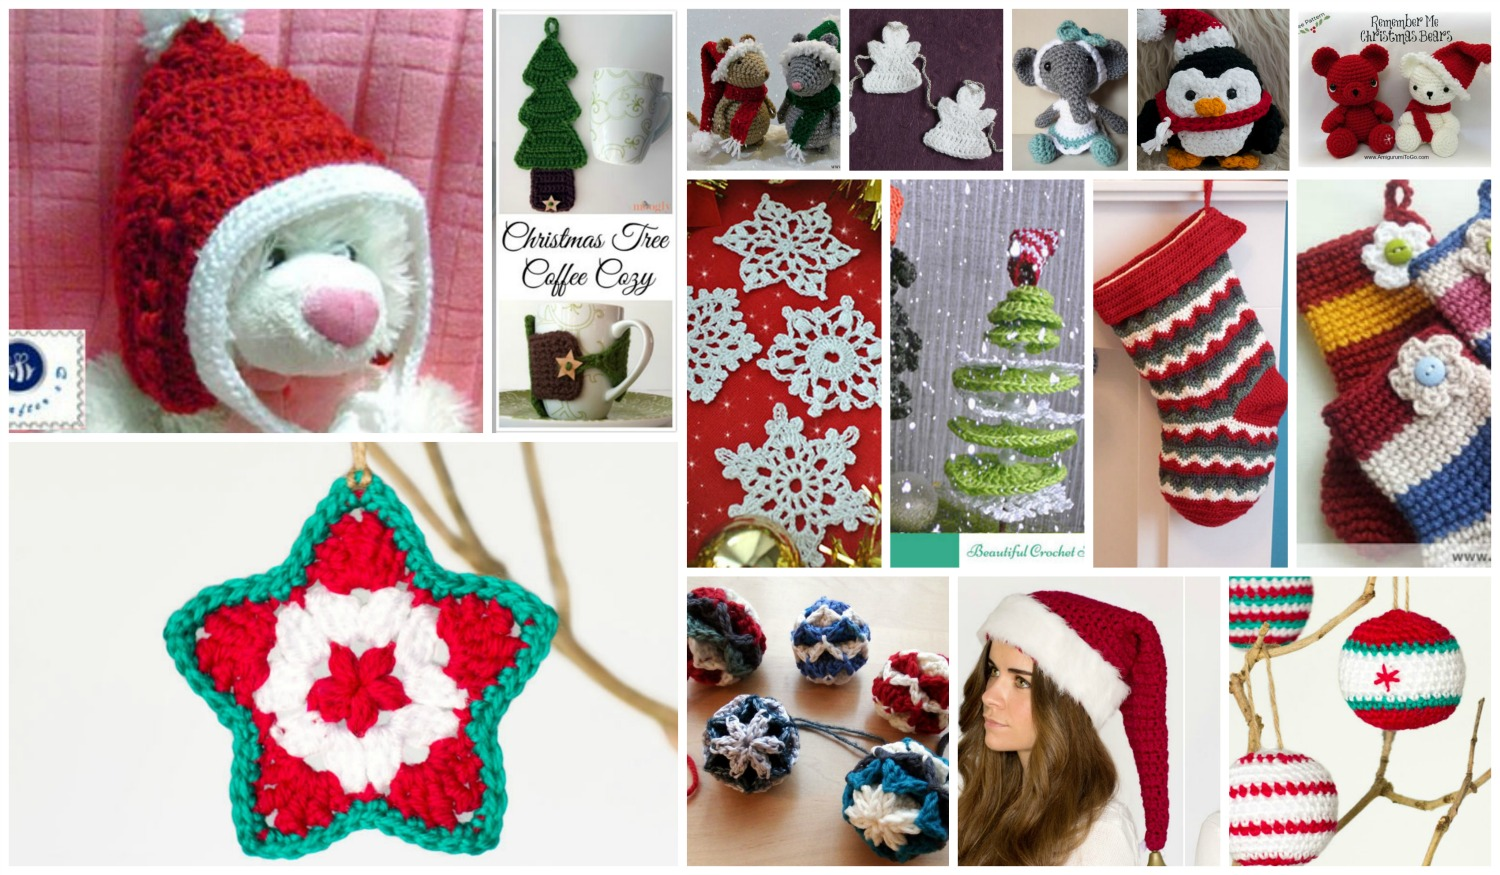 Free crochet Christmas ornament patterns you'll love.